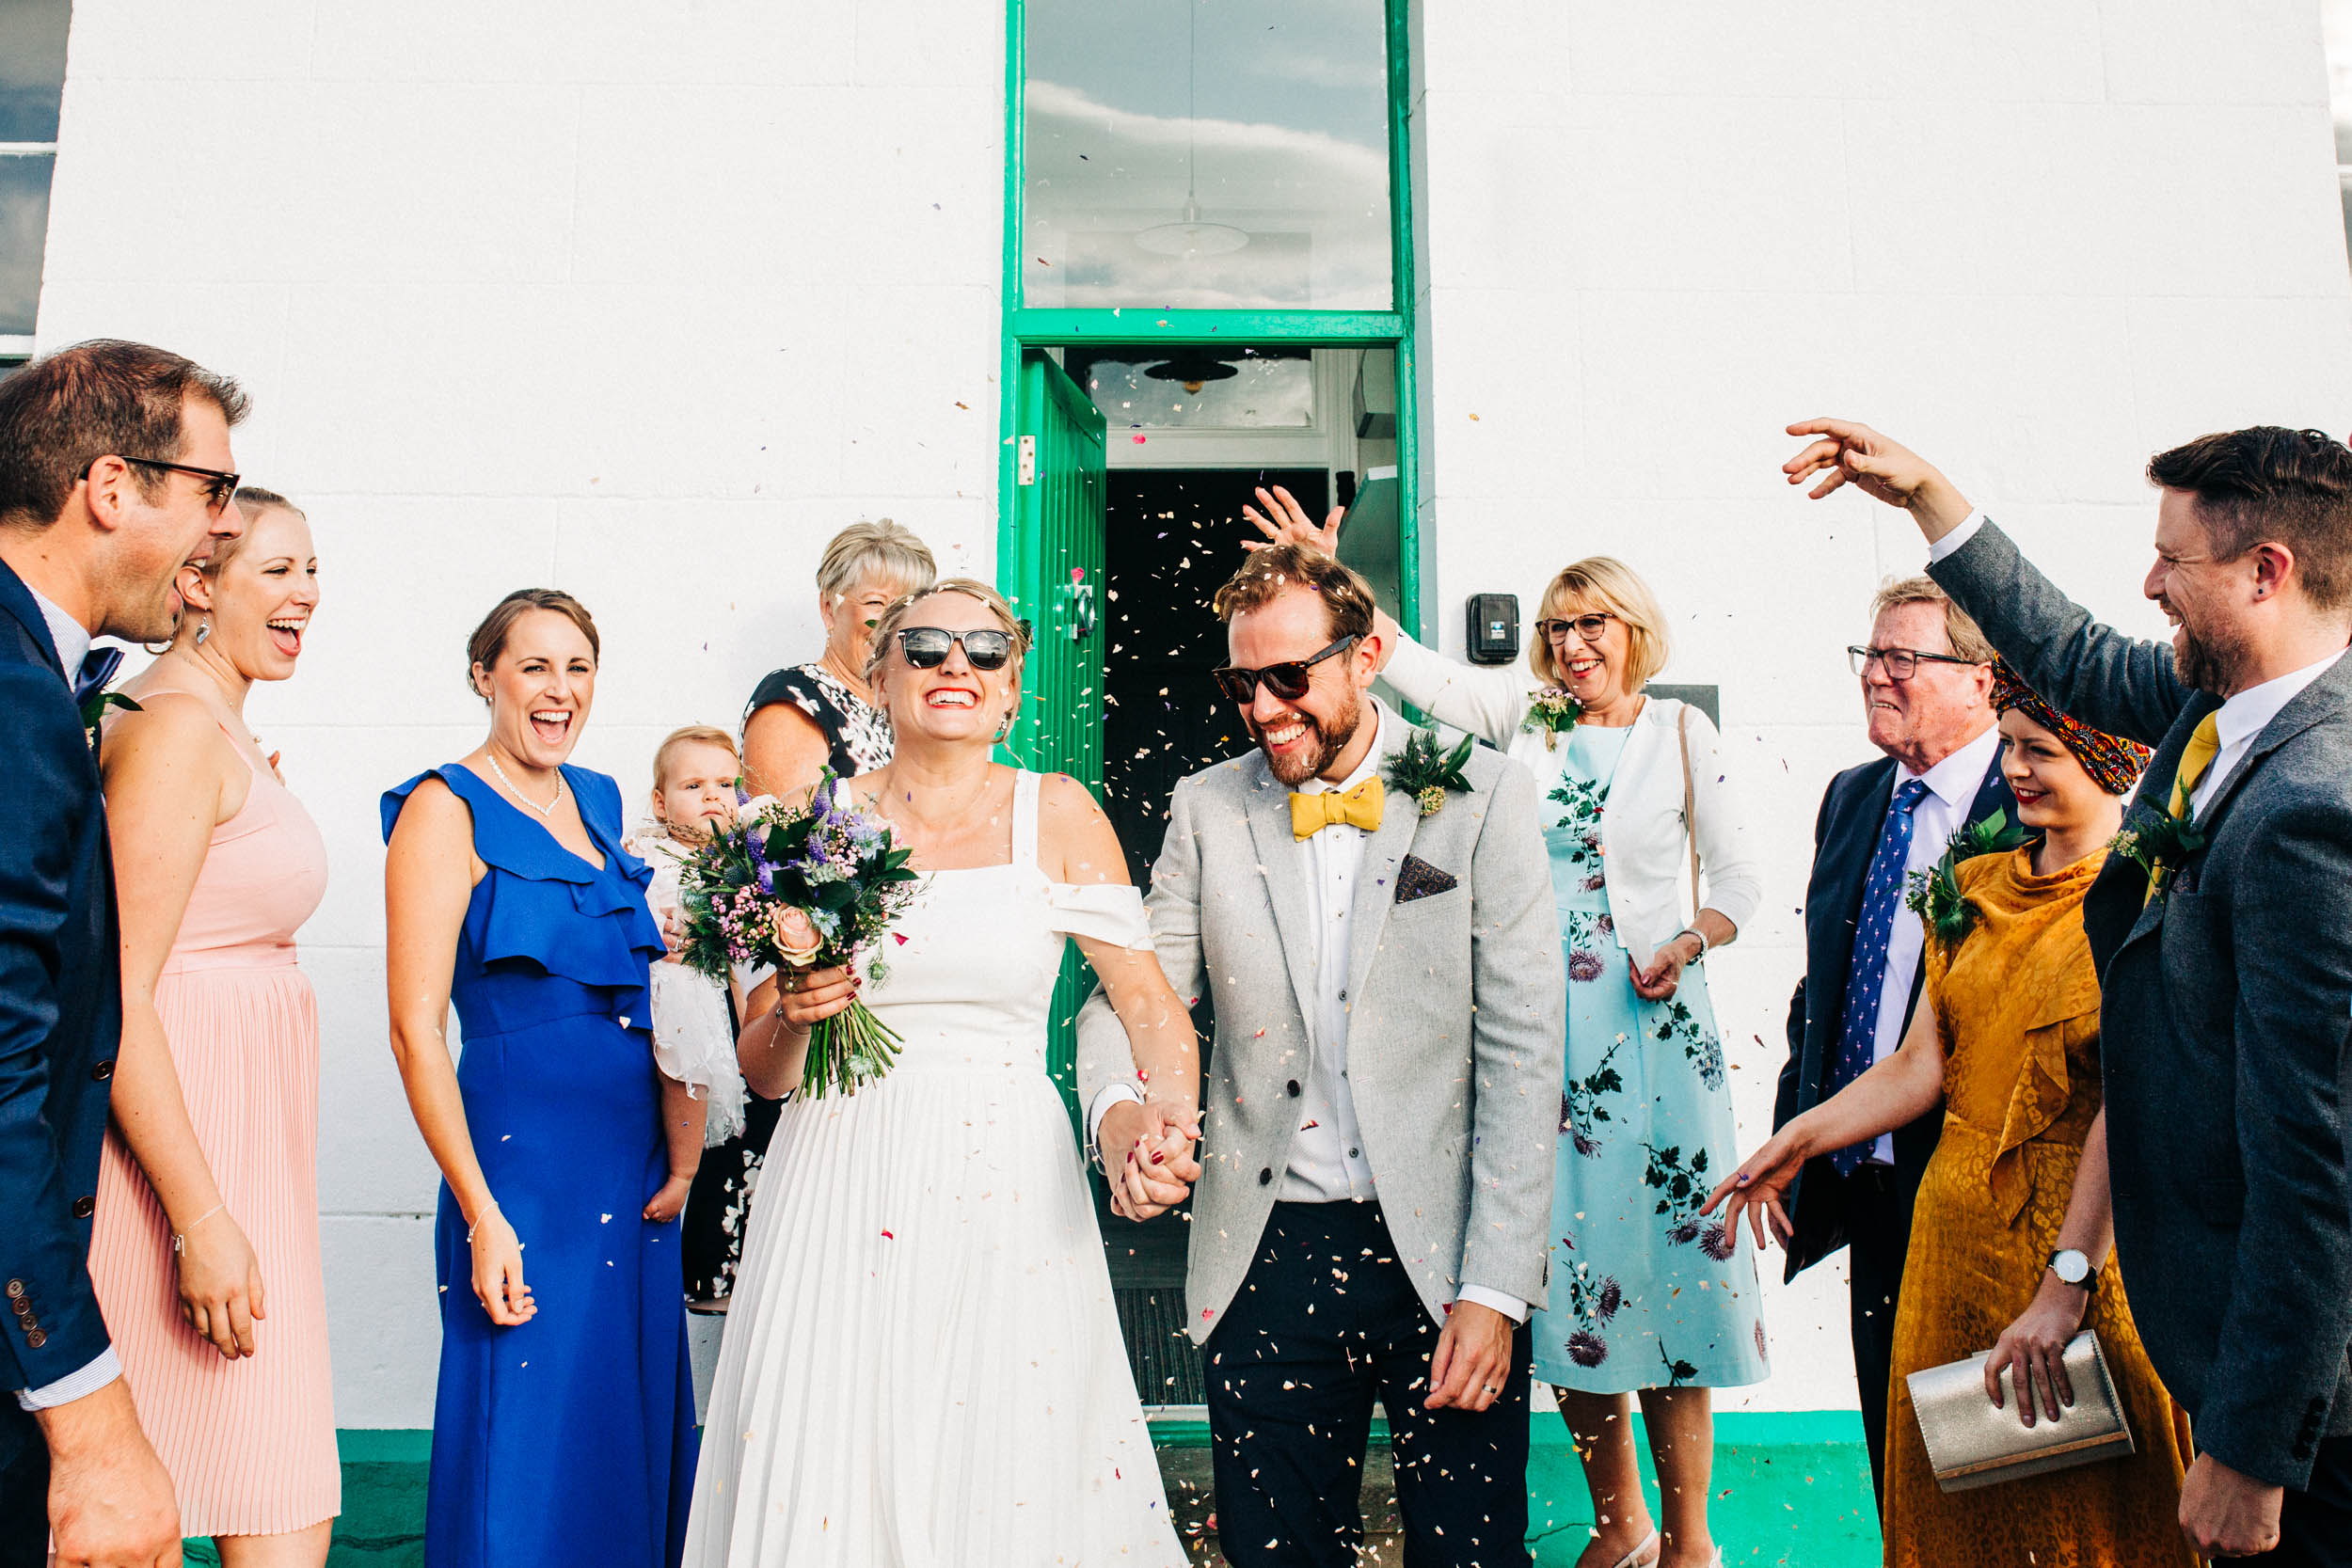 Alex_Sedgmond_Photography-MonkNashLighthouse-WeddingPhotography-Penny&Mike-234.jpg